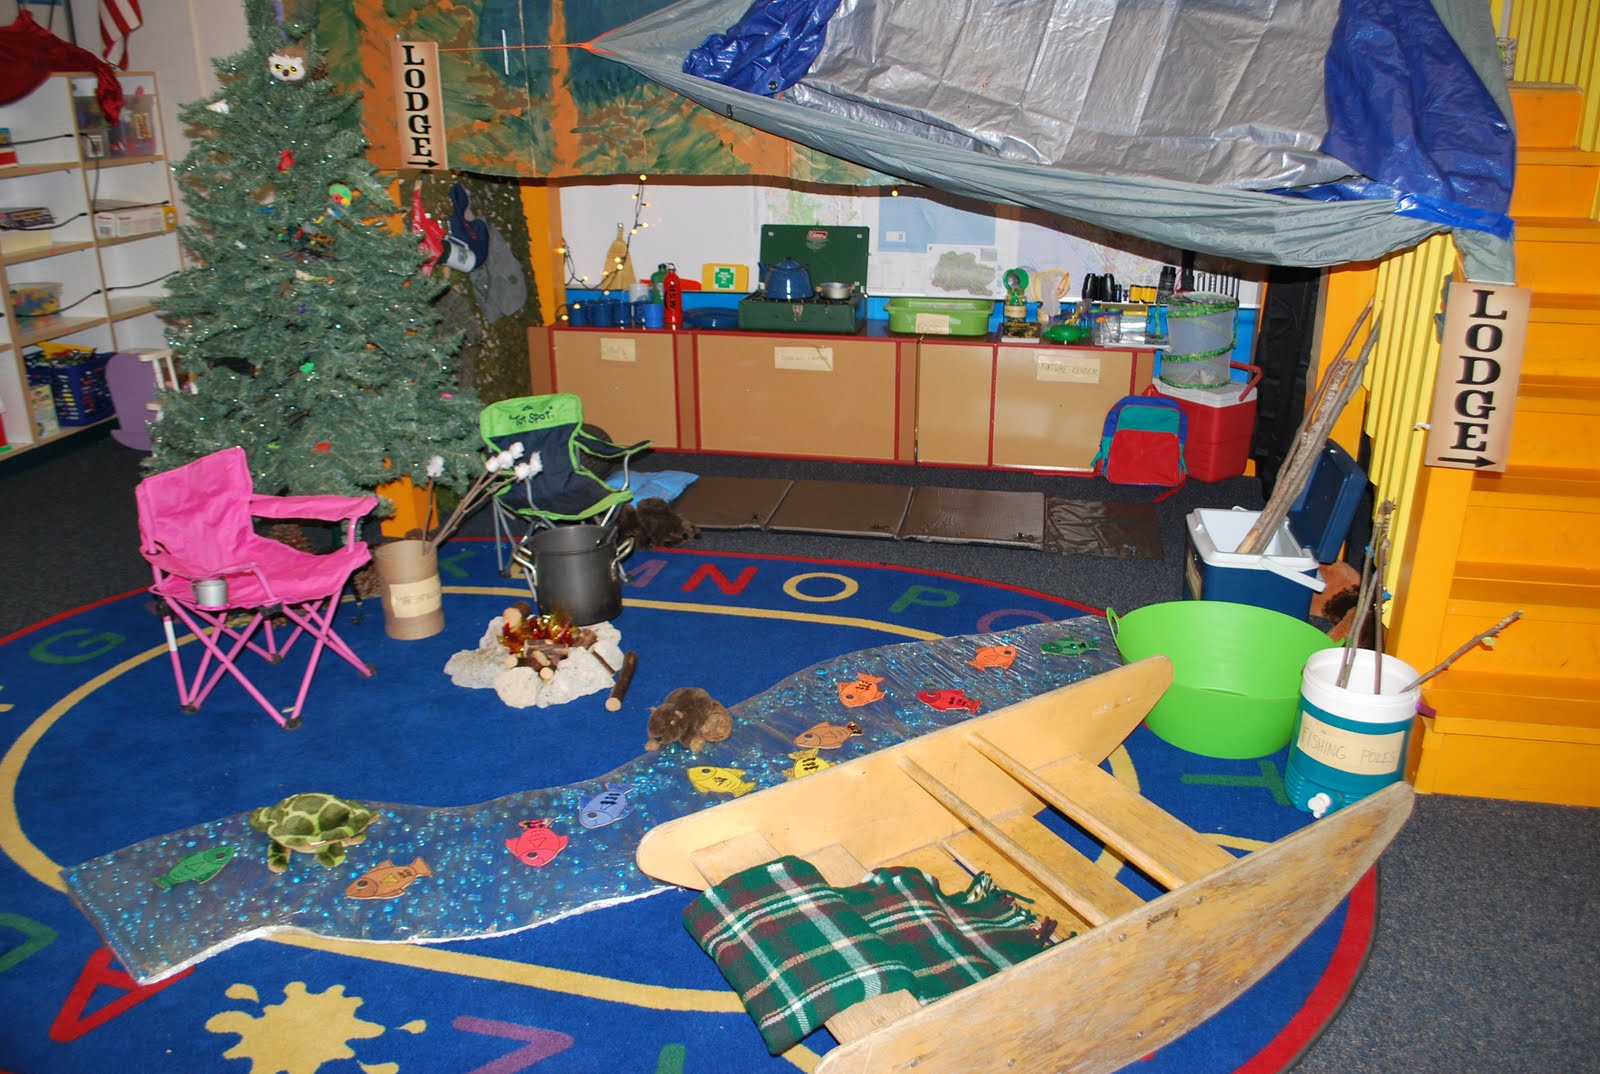 Toddler plastic table and chairs - Preschool Projects Camping And Native American Village